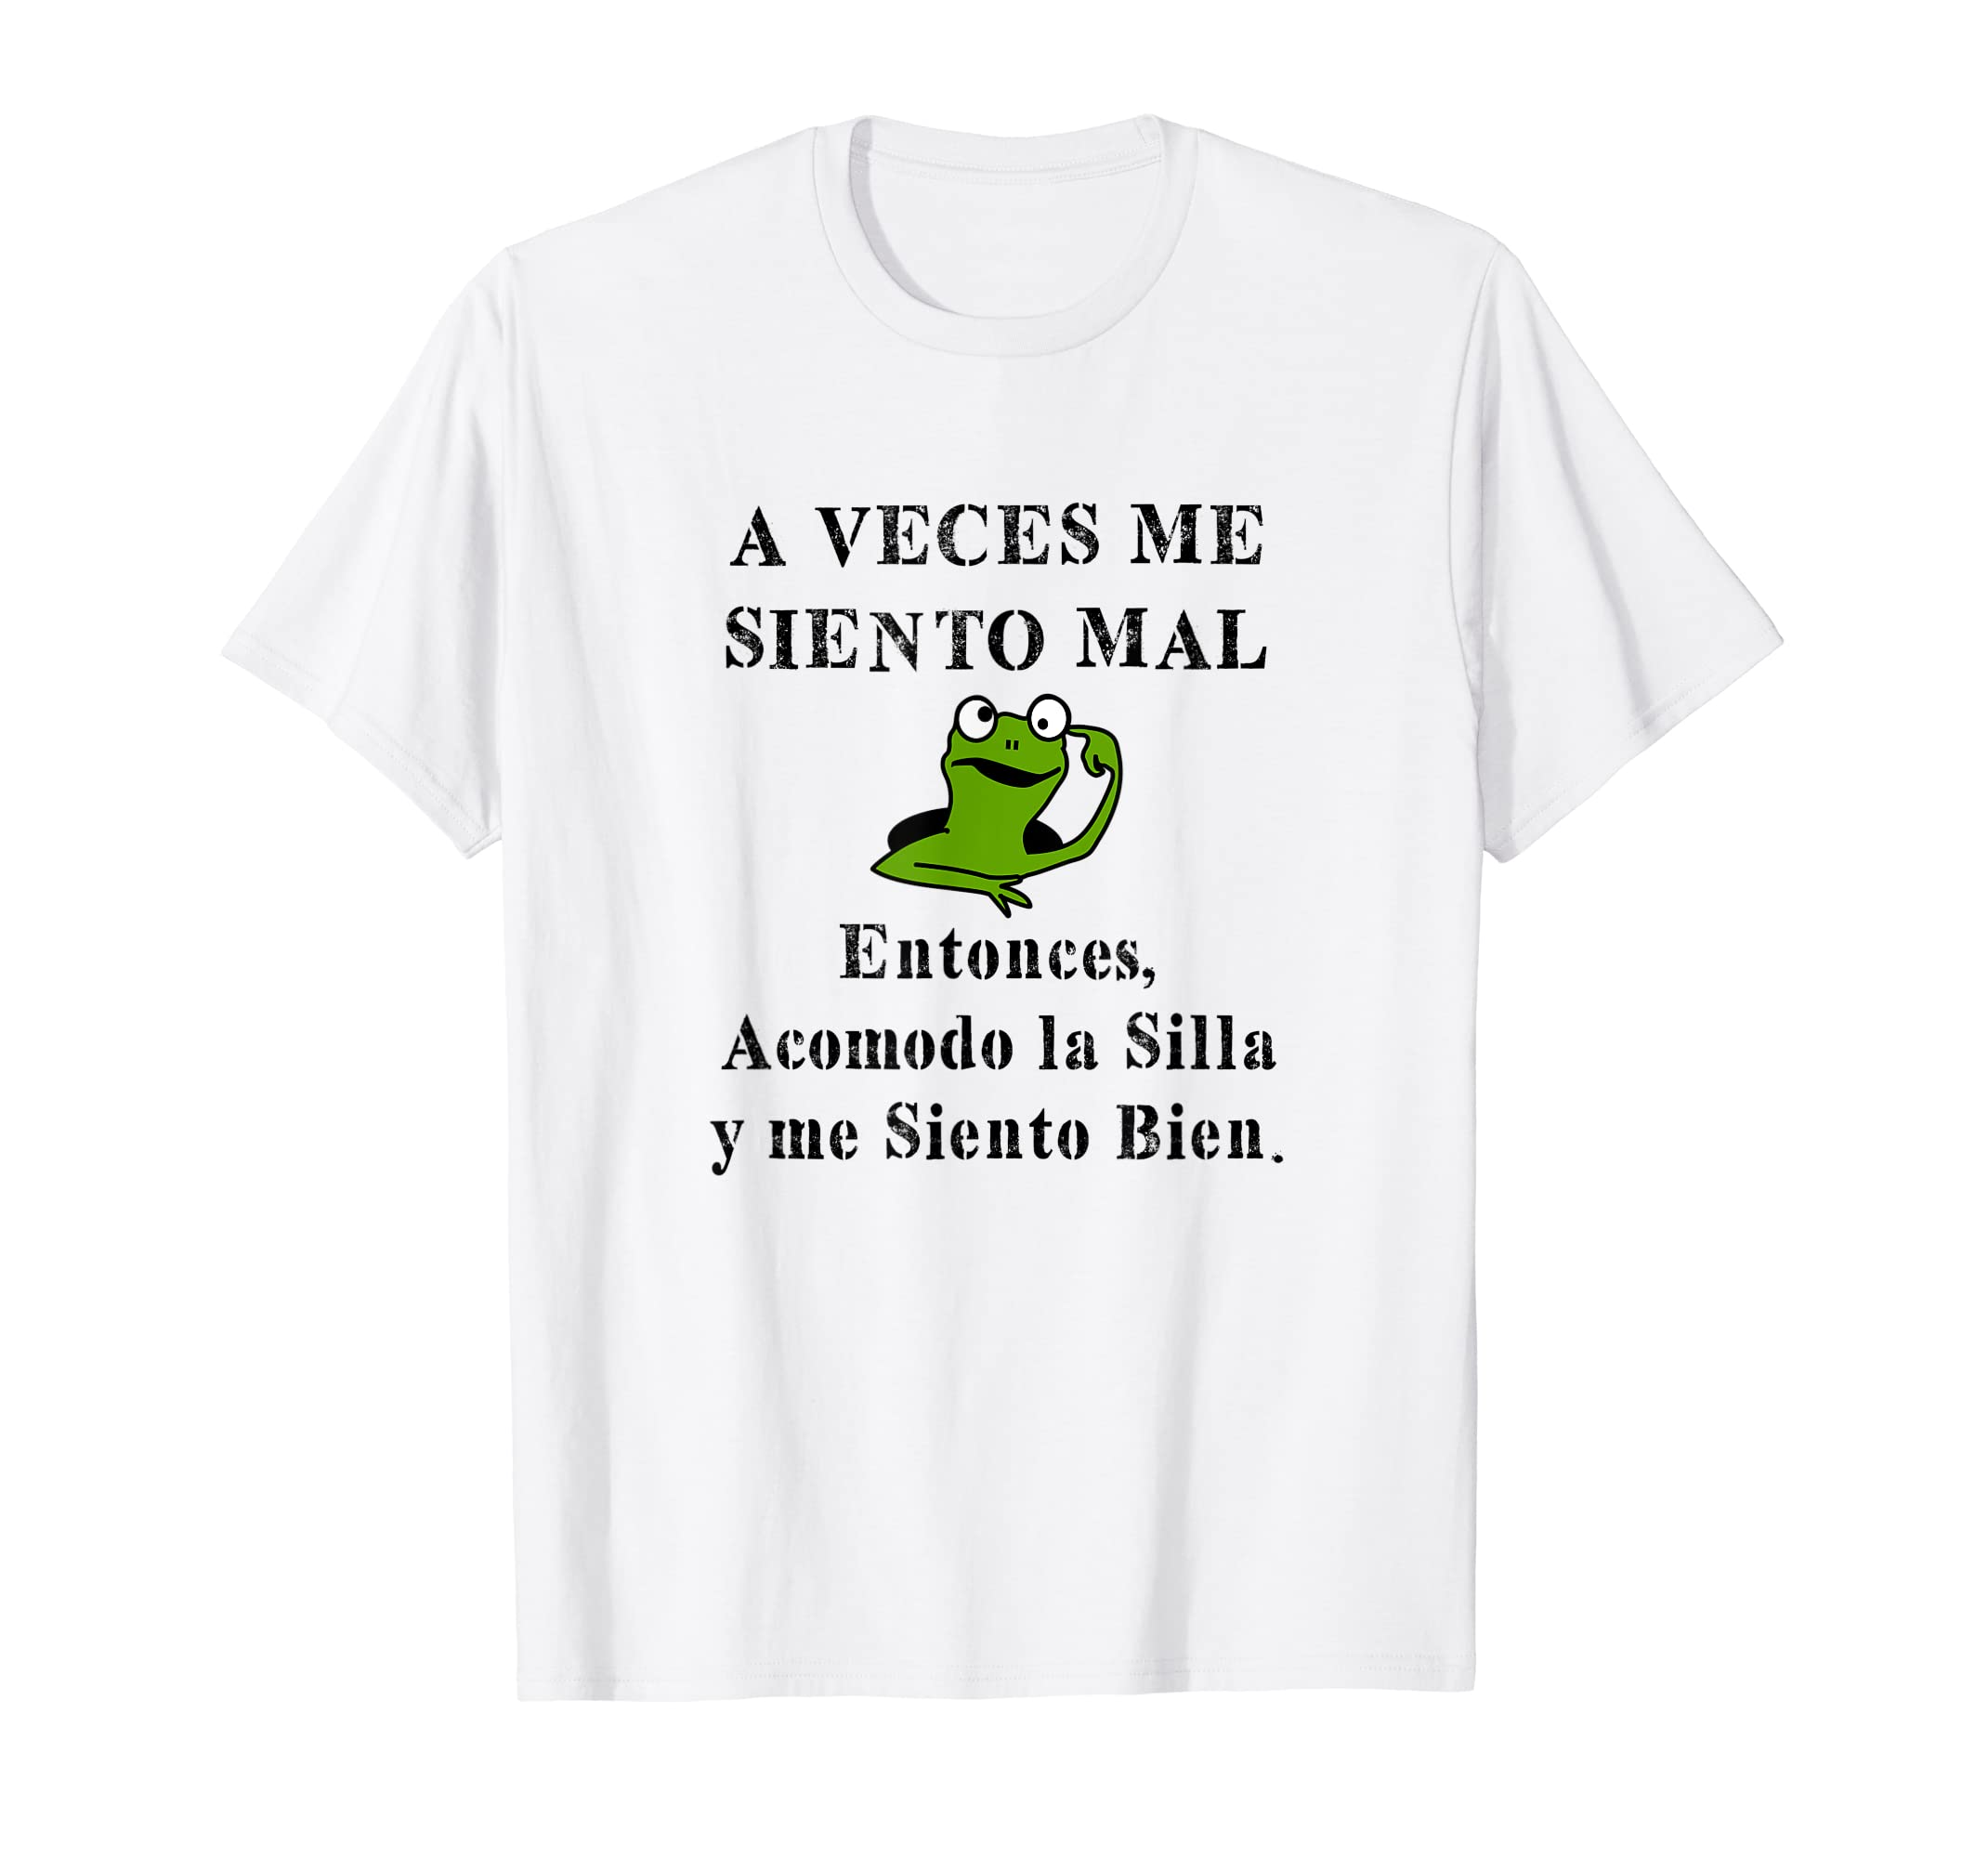 Amazon.com: CHISTOSO HUMOR FUNNY SPANISH MEME SHIRTS: Clothing